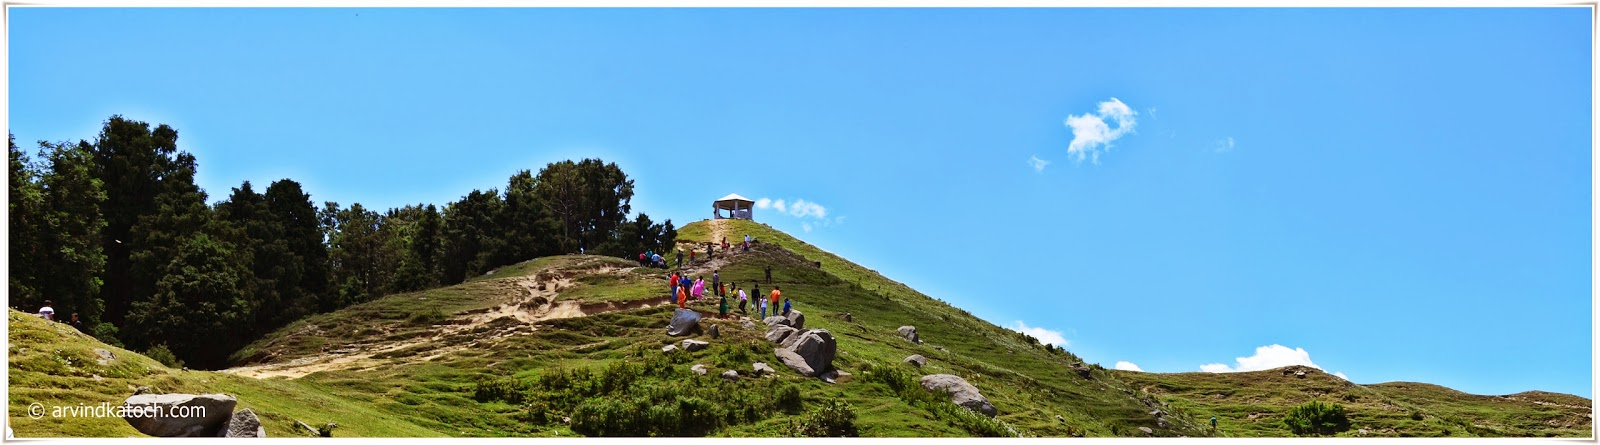 Dainkund, Highest Peak, Dalhousie